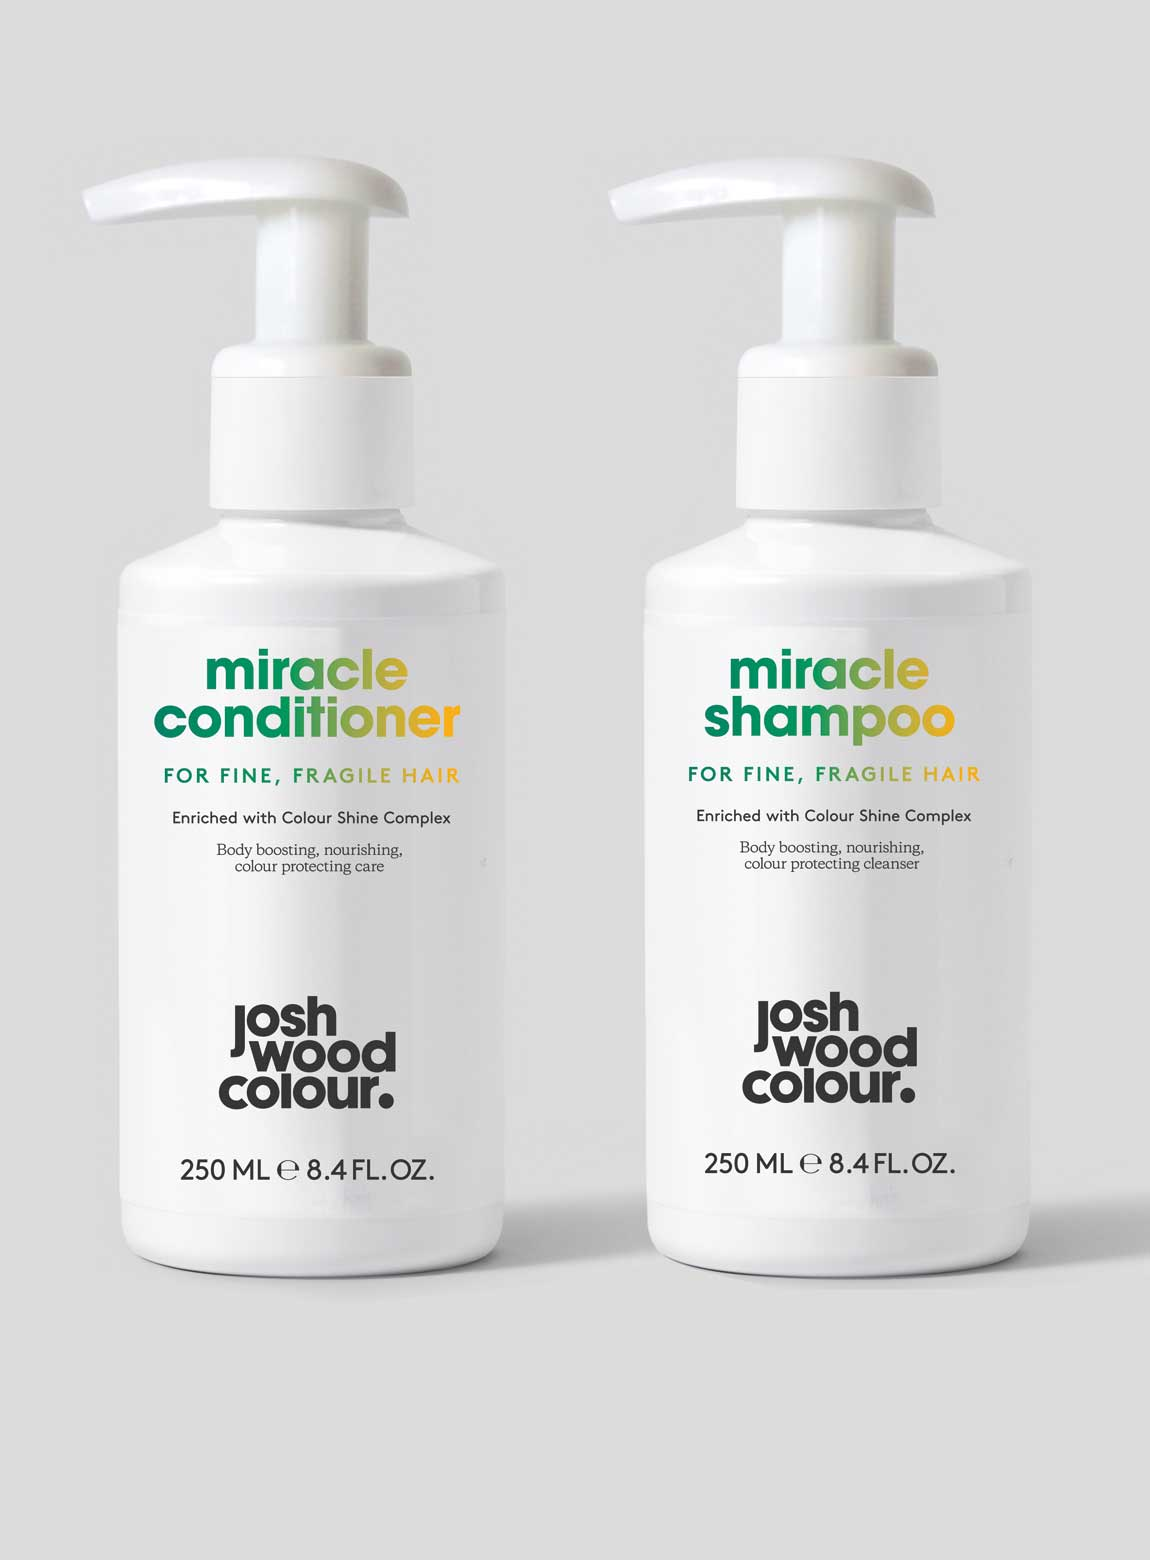 Miracle Shampoo and Conditioner for Fine, Fragile Hair